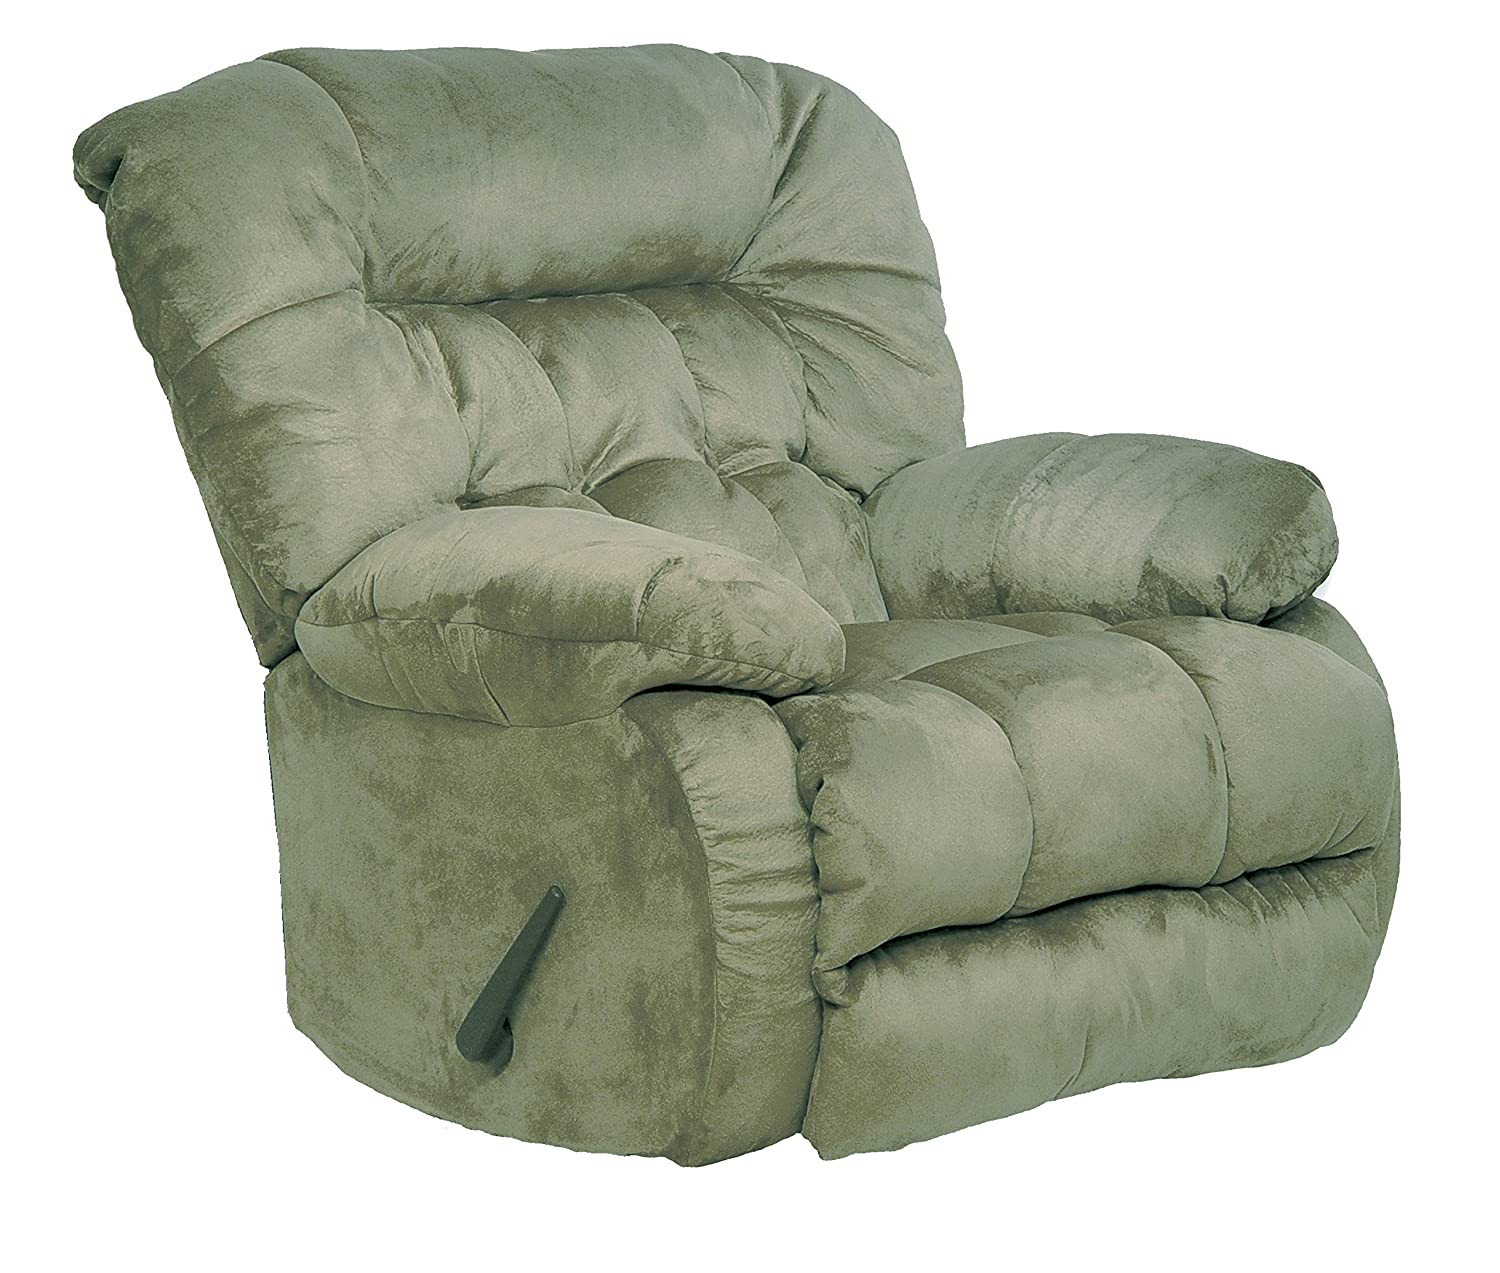 Amazon.com CATNAPPER 45175222015 Teddy Bear Chaise Swivel Glider Recliner Sage Kitchen u0026 Dining  sc 1 st  Amazon.com : big and tall recliner lazy boy - islam-shia.org